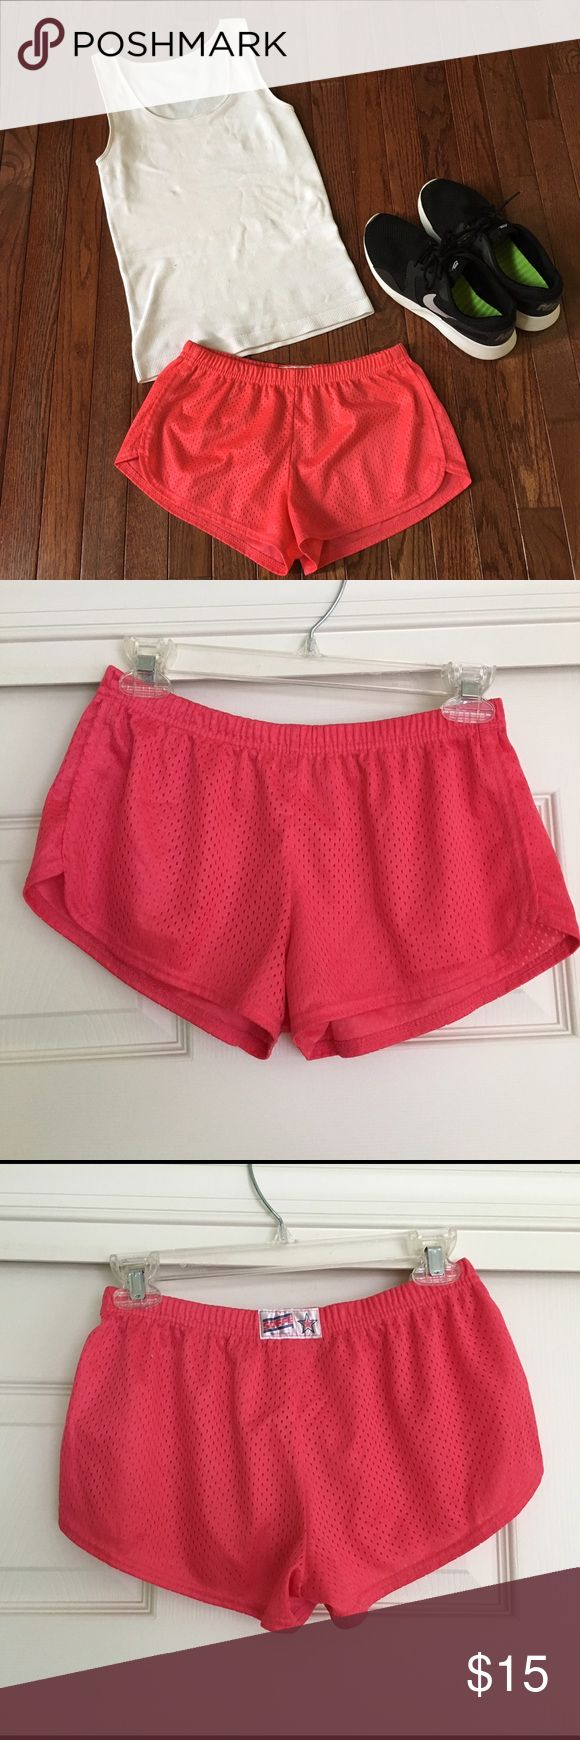 """Pink Soffee Shorts """"Jr Teeny Tiny"""" Soffe shorts. Very short. In perfect condition. Super soft hot pink workout shorts! Adorable shorts perfect for summer workouts! Soffe Shorts"""